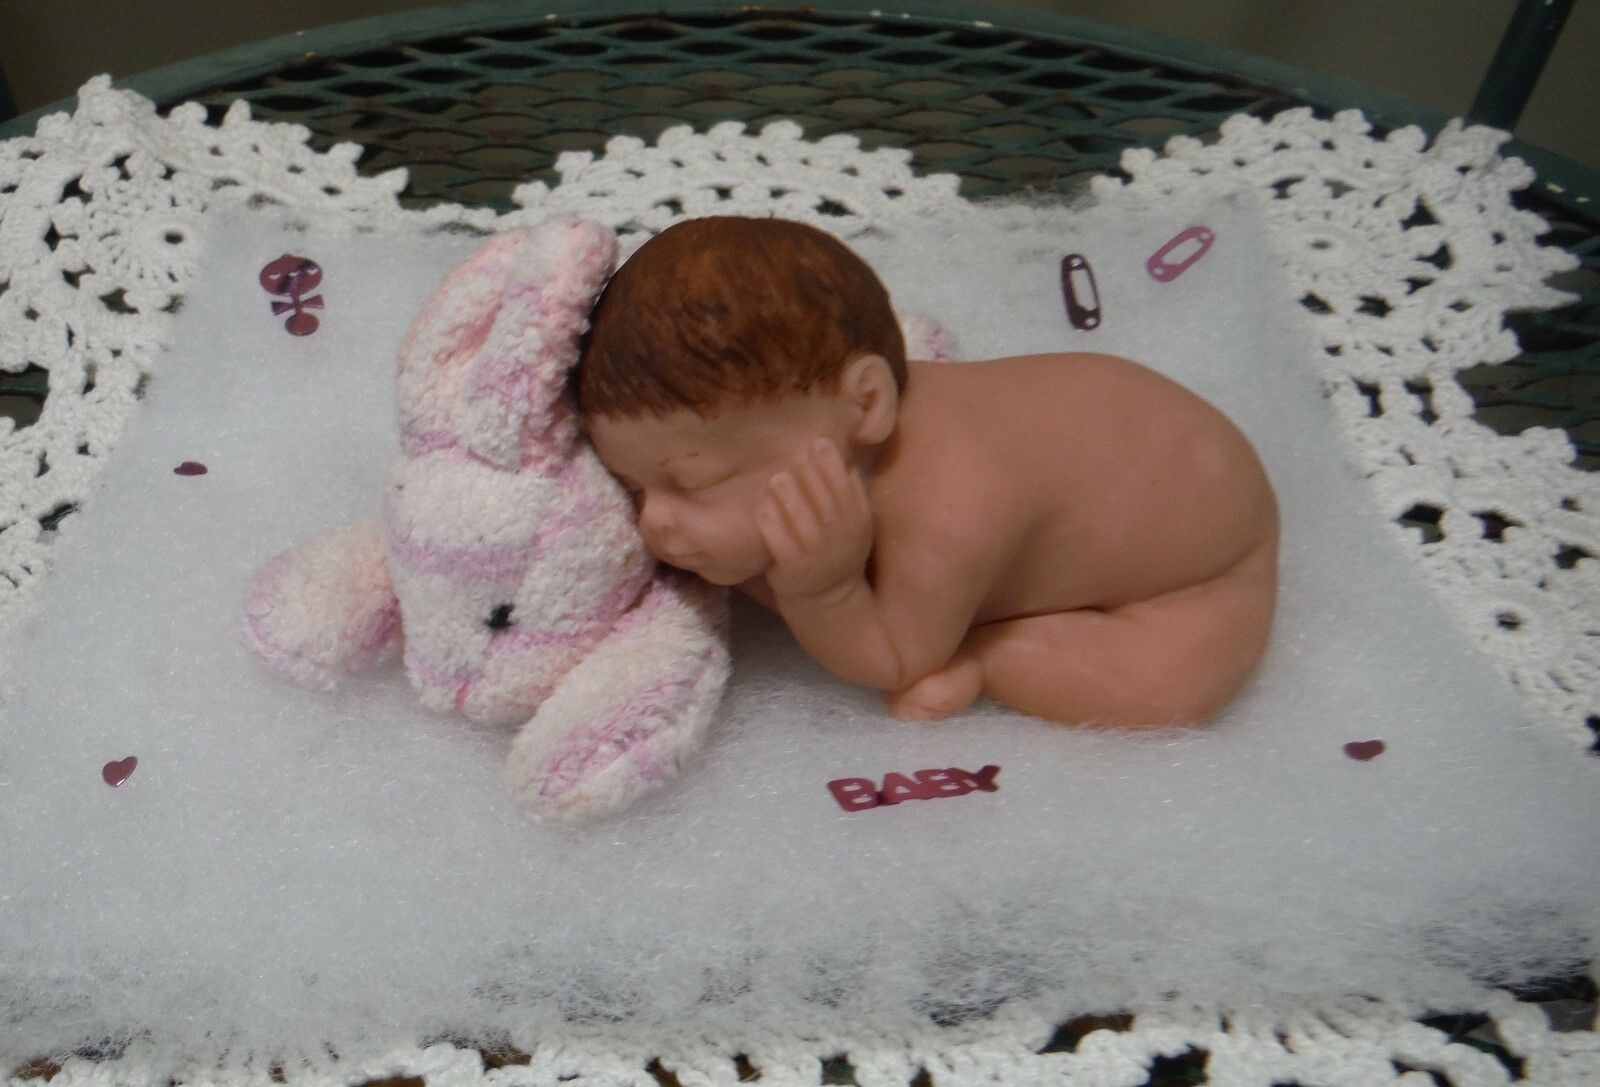 3 1 2  POLYMER BABY CLAY OOAK BABY POLYMER DOLL LAYING ON NEW ROSS BUNNY 01ad87